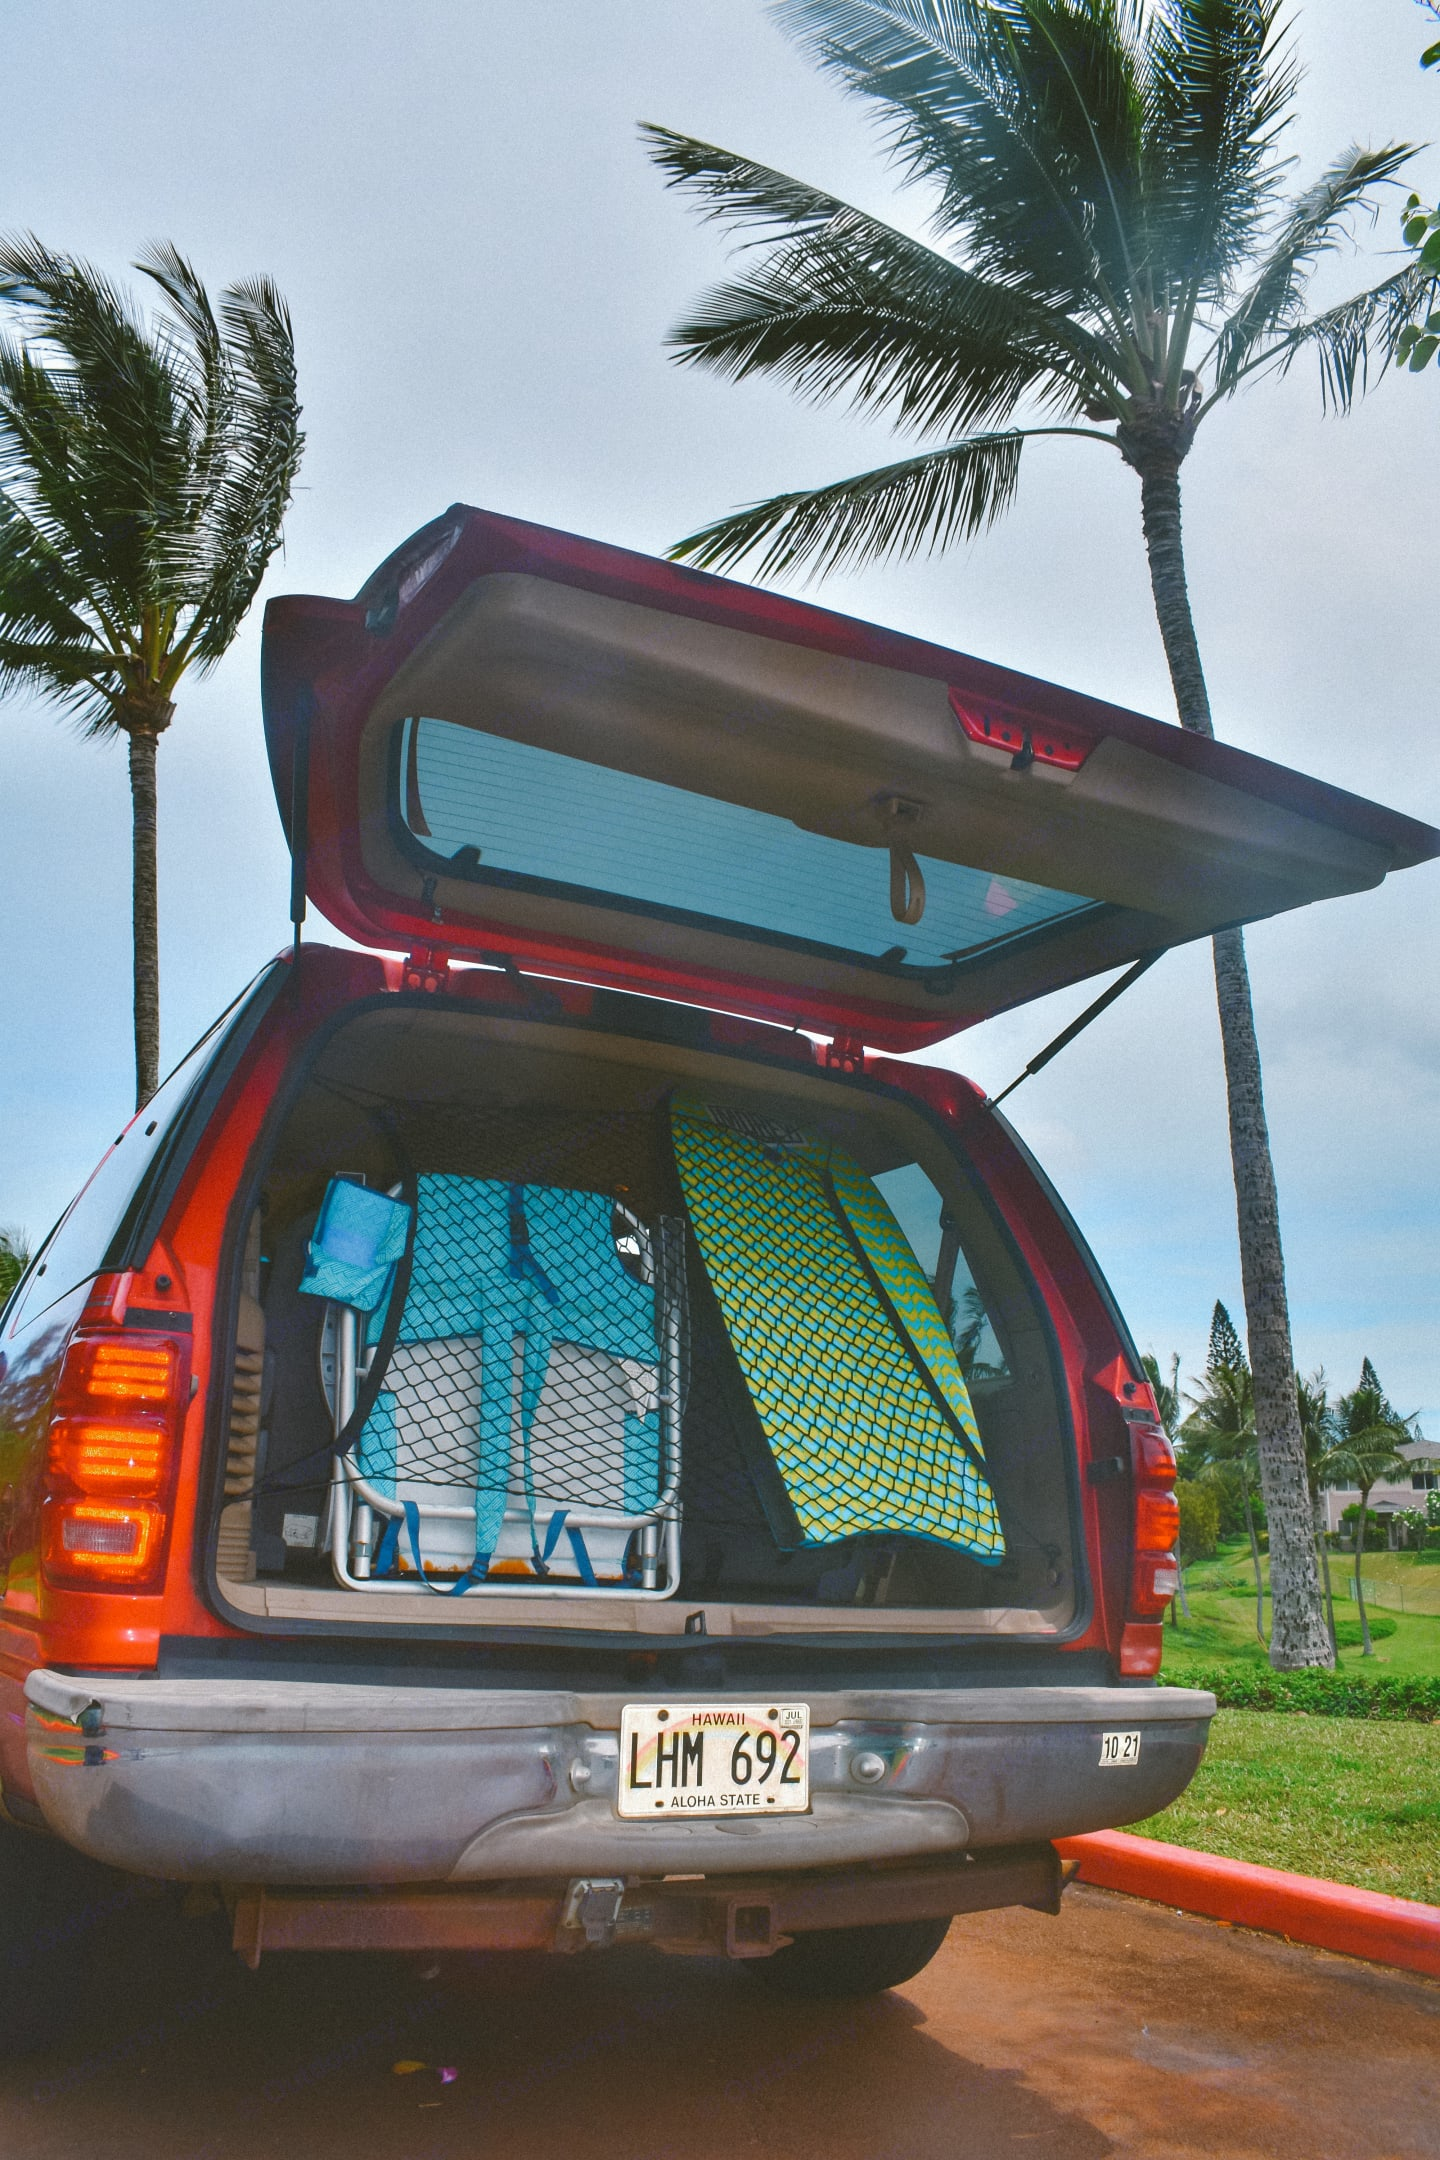 When on the road there is a lot of room for anything you would need to carry on your trip weather that be luggage, shopping, or your beach gear!. Ford Ford Expedition 2001